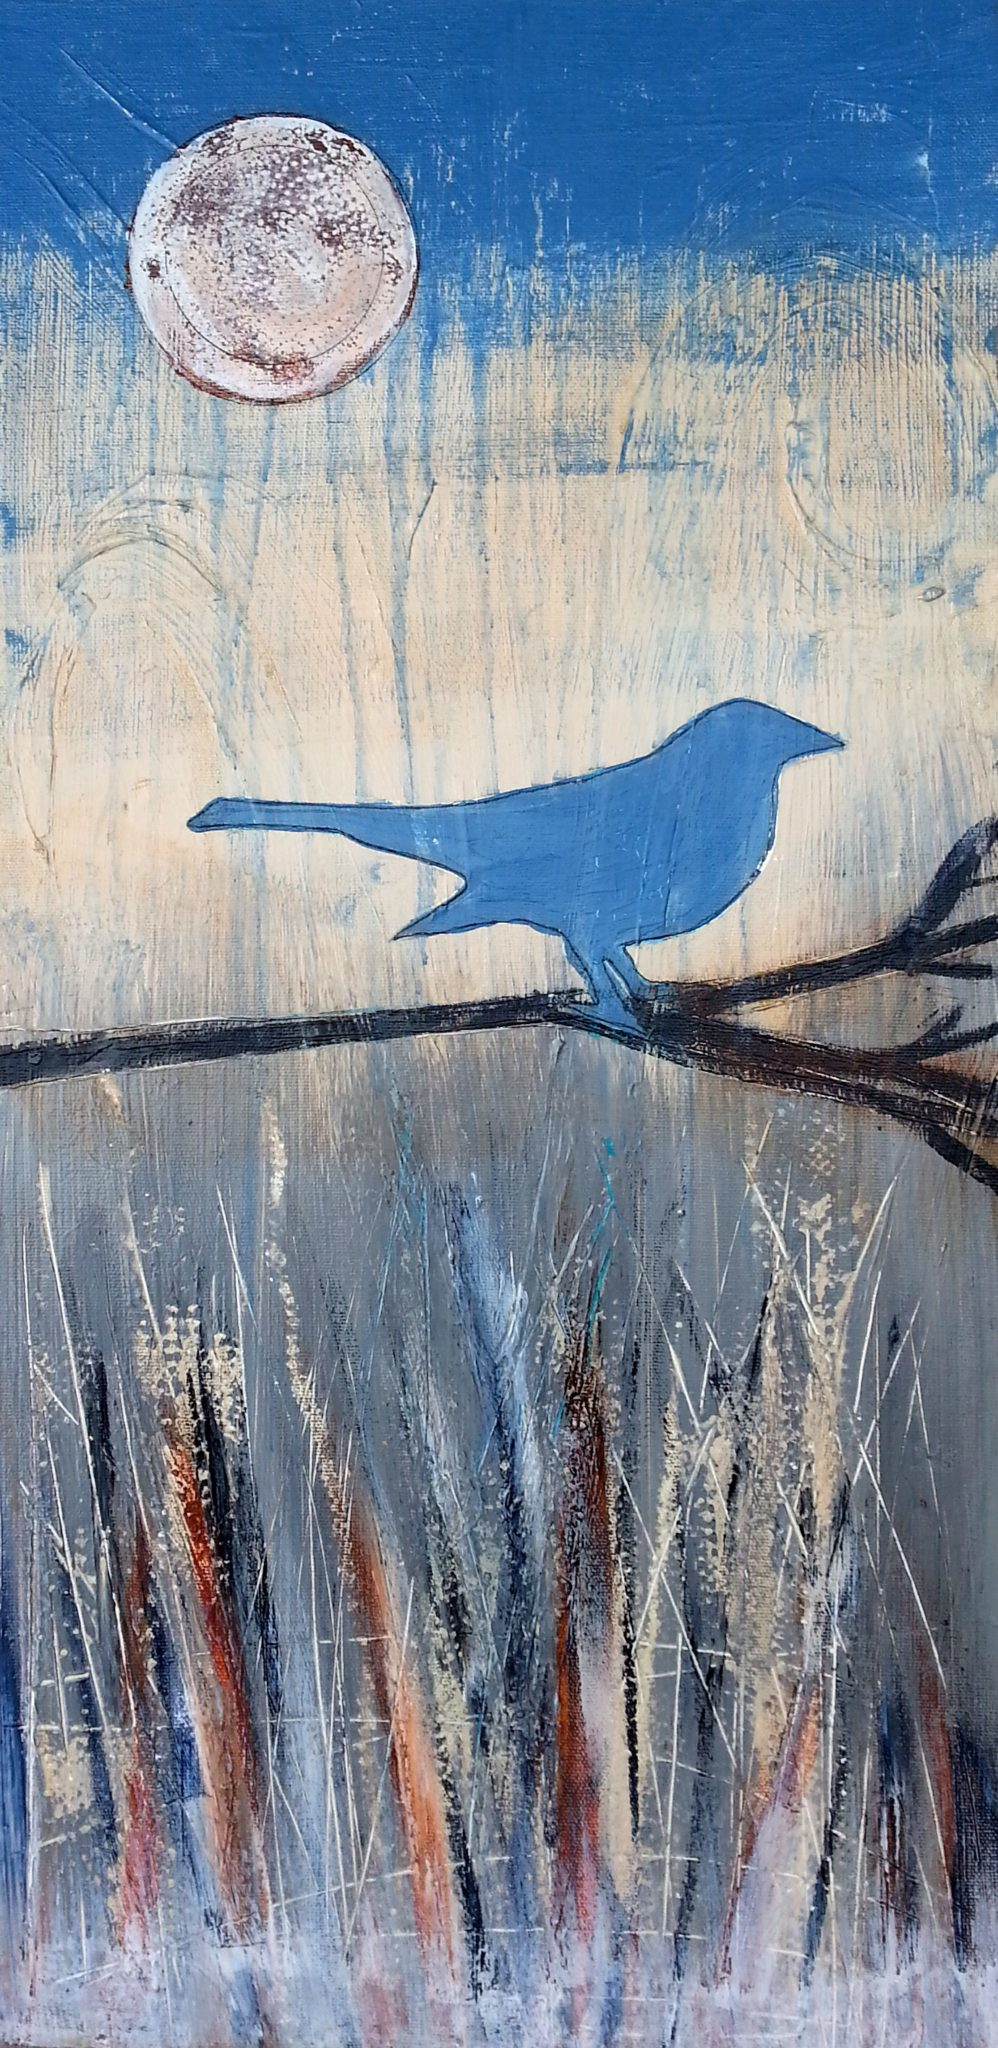 Avian Winter, acrylic painting by Courtney Putnam